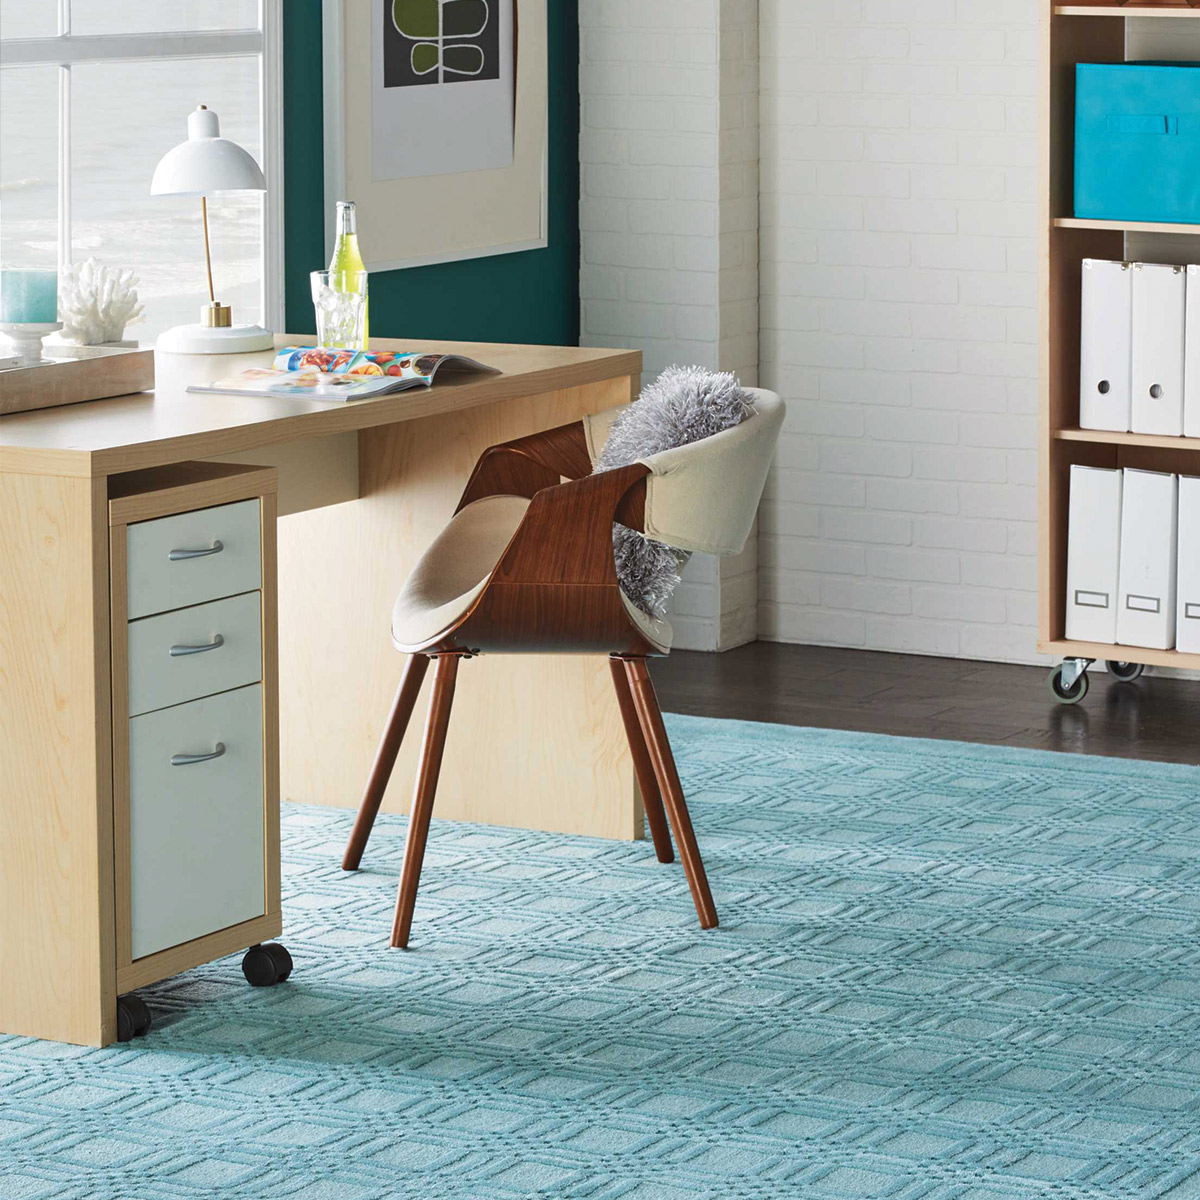 For A More Peaceful Home Office Environment, Aqua Rugs Are A Perfect  Choice. In This Home Office Concept, A Tone On Tone Aqua Westport  Collection Rug Is ...